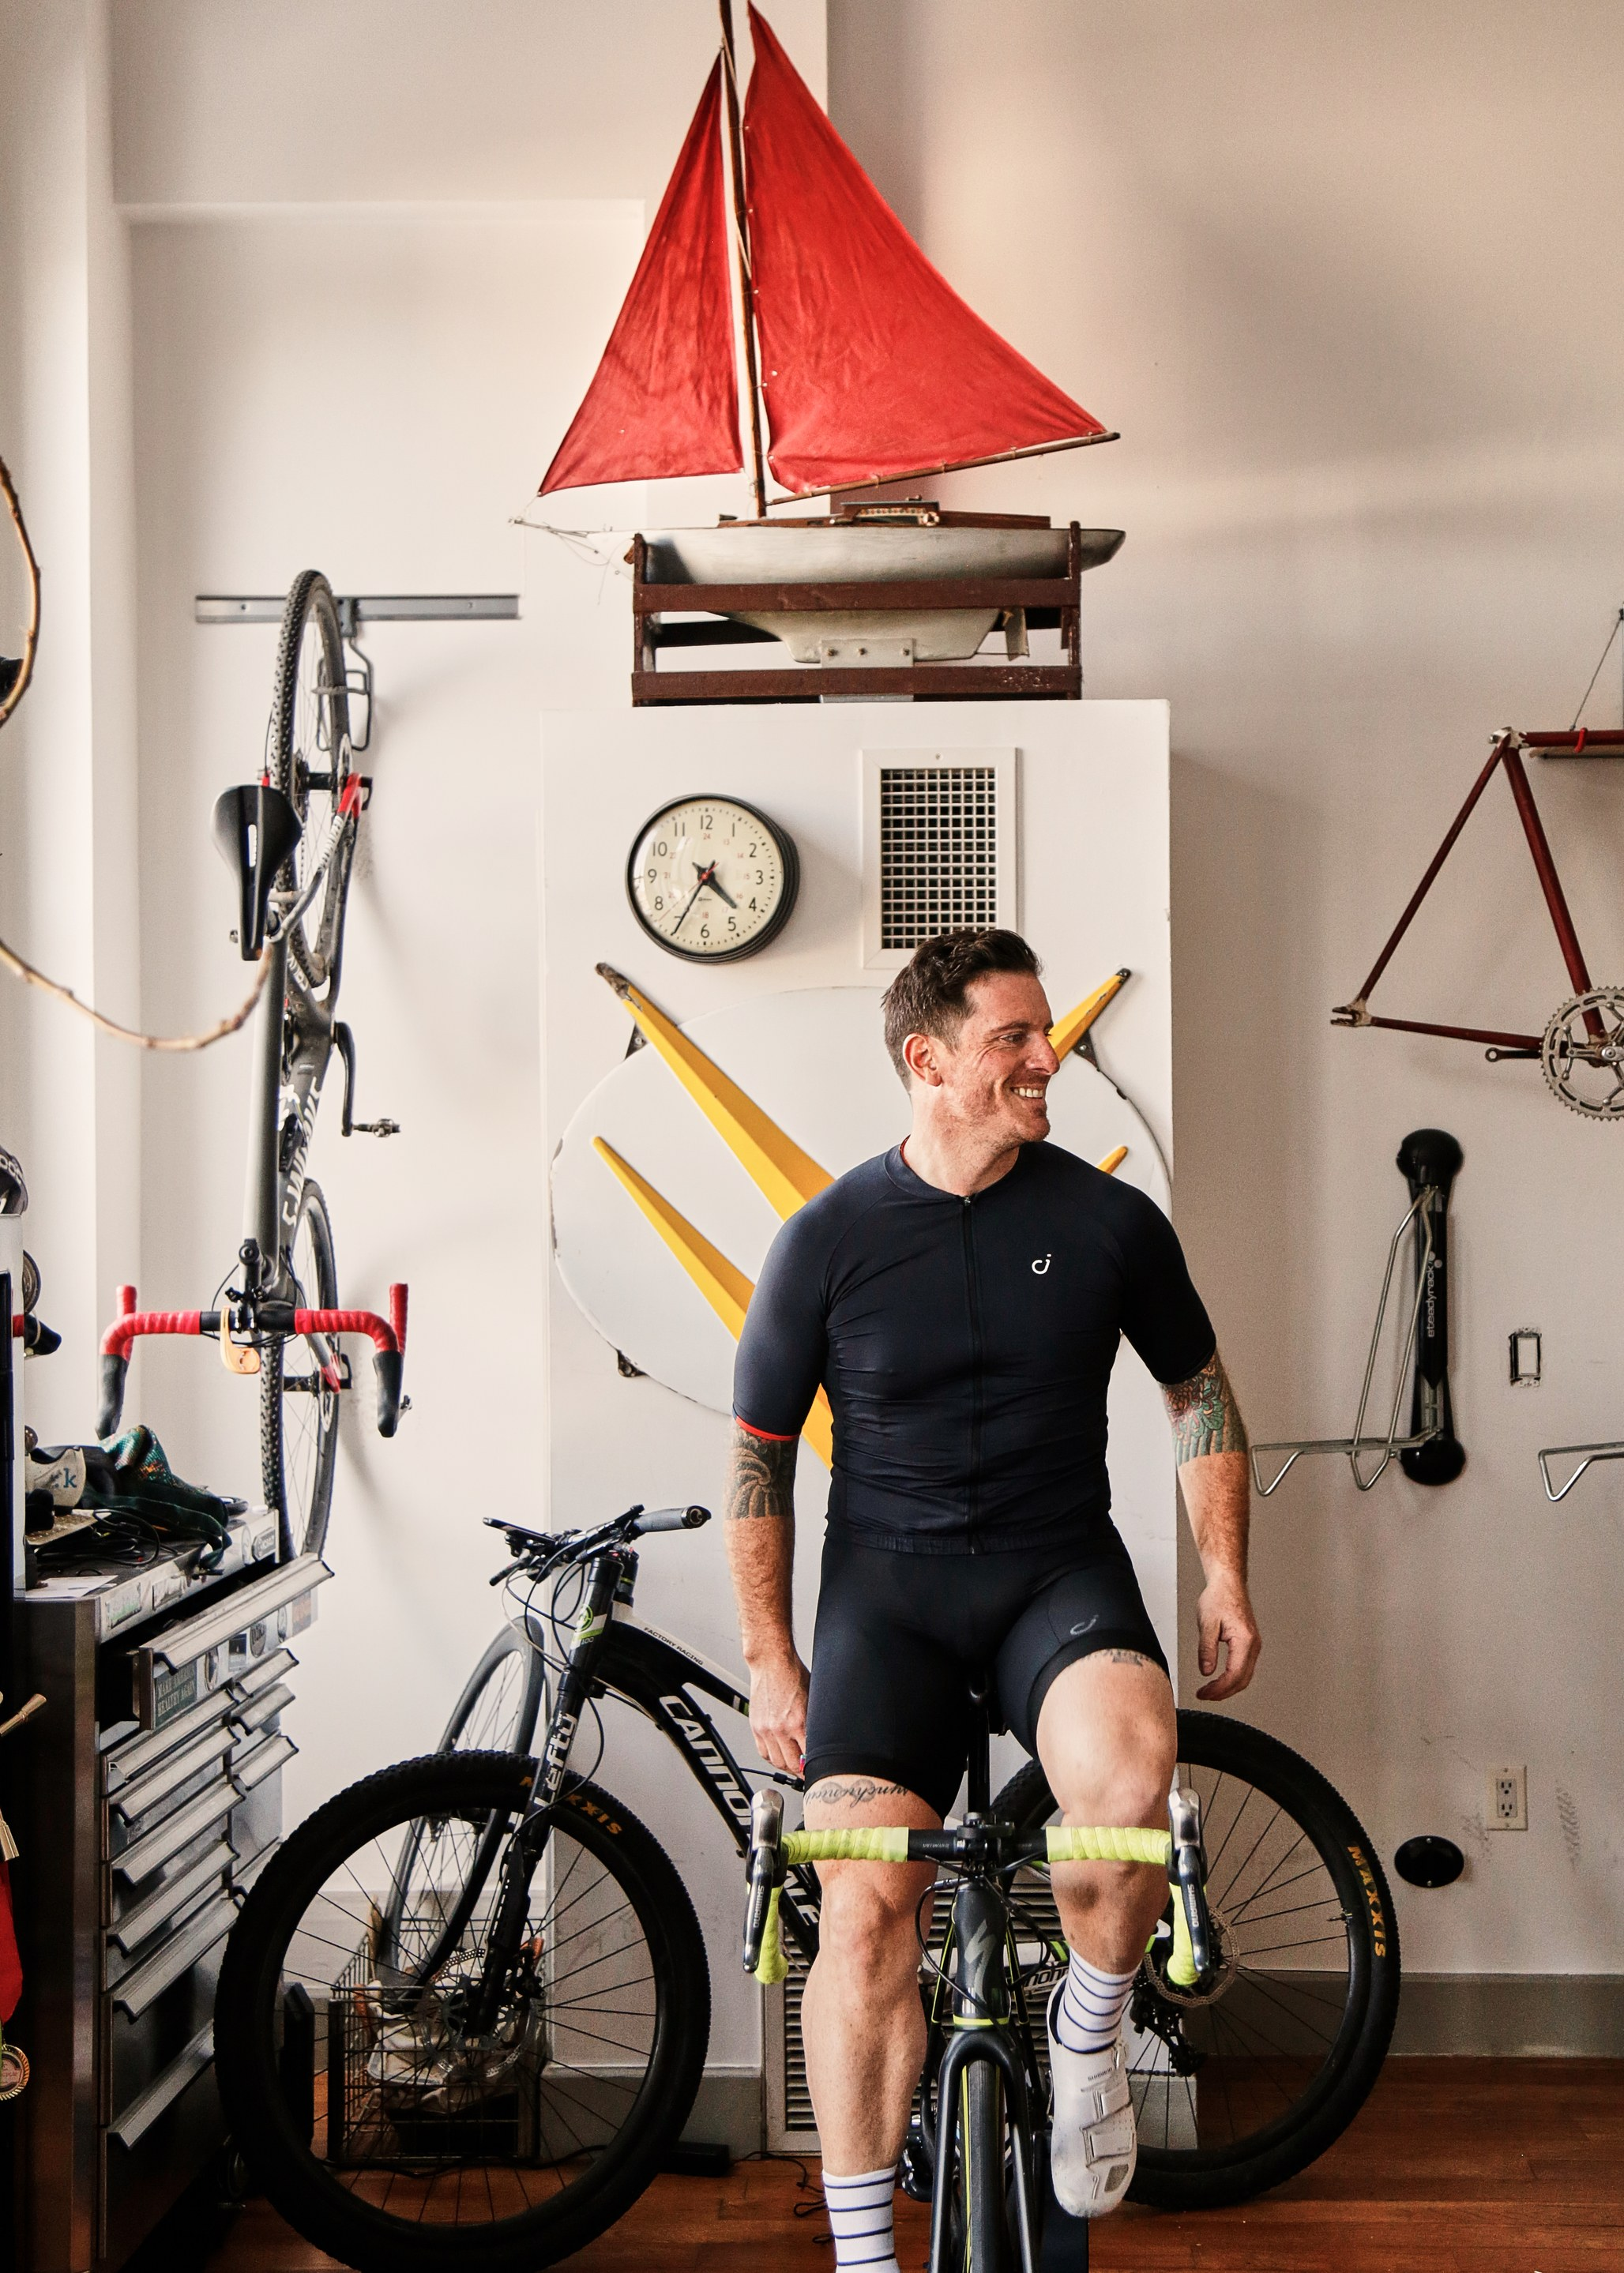 Seamus Mullen with his bikes in his dumbo, brooklyn apartment